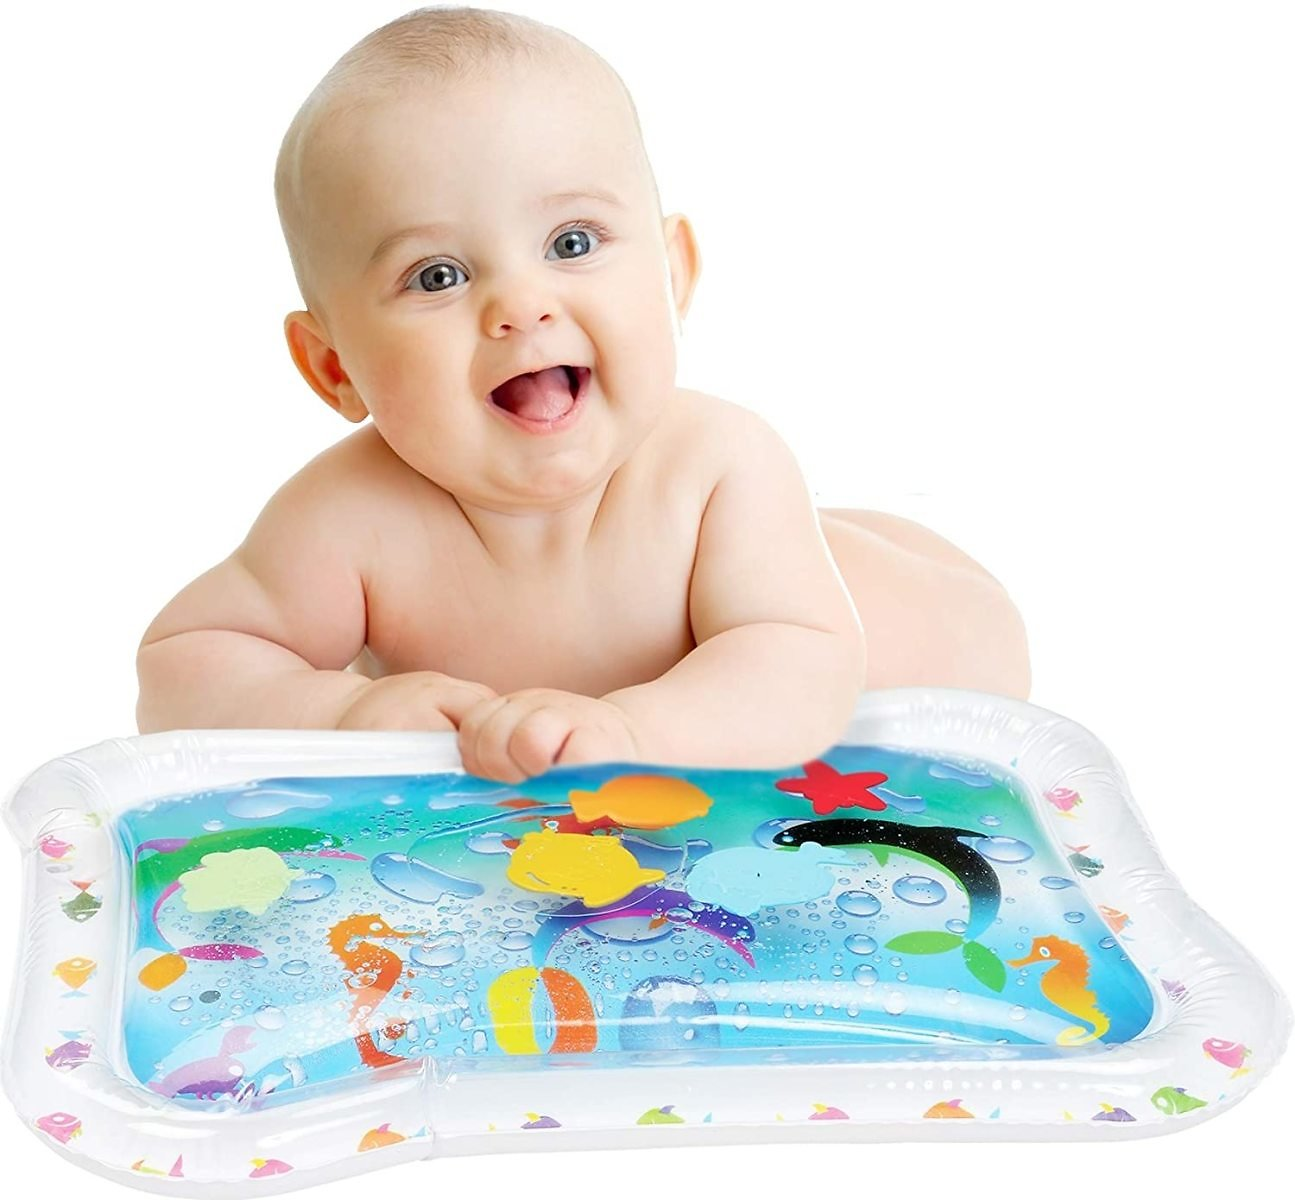 Bundaloo Tummy Time Water Play Mat, With Colorful Plastic Swimming Fish.